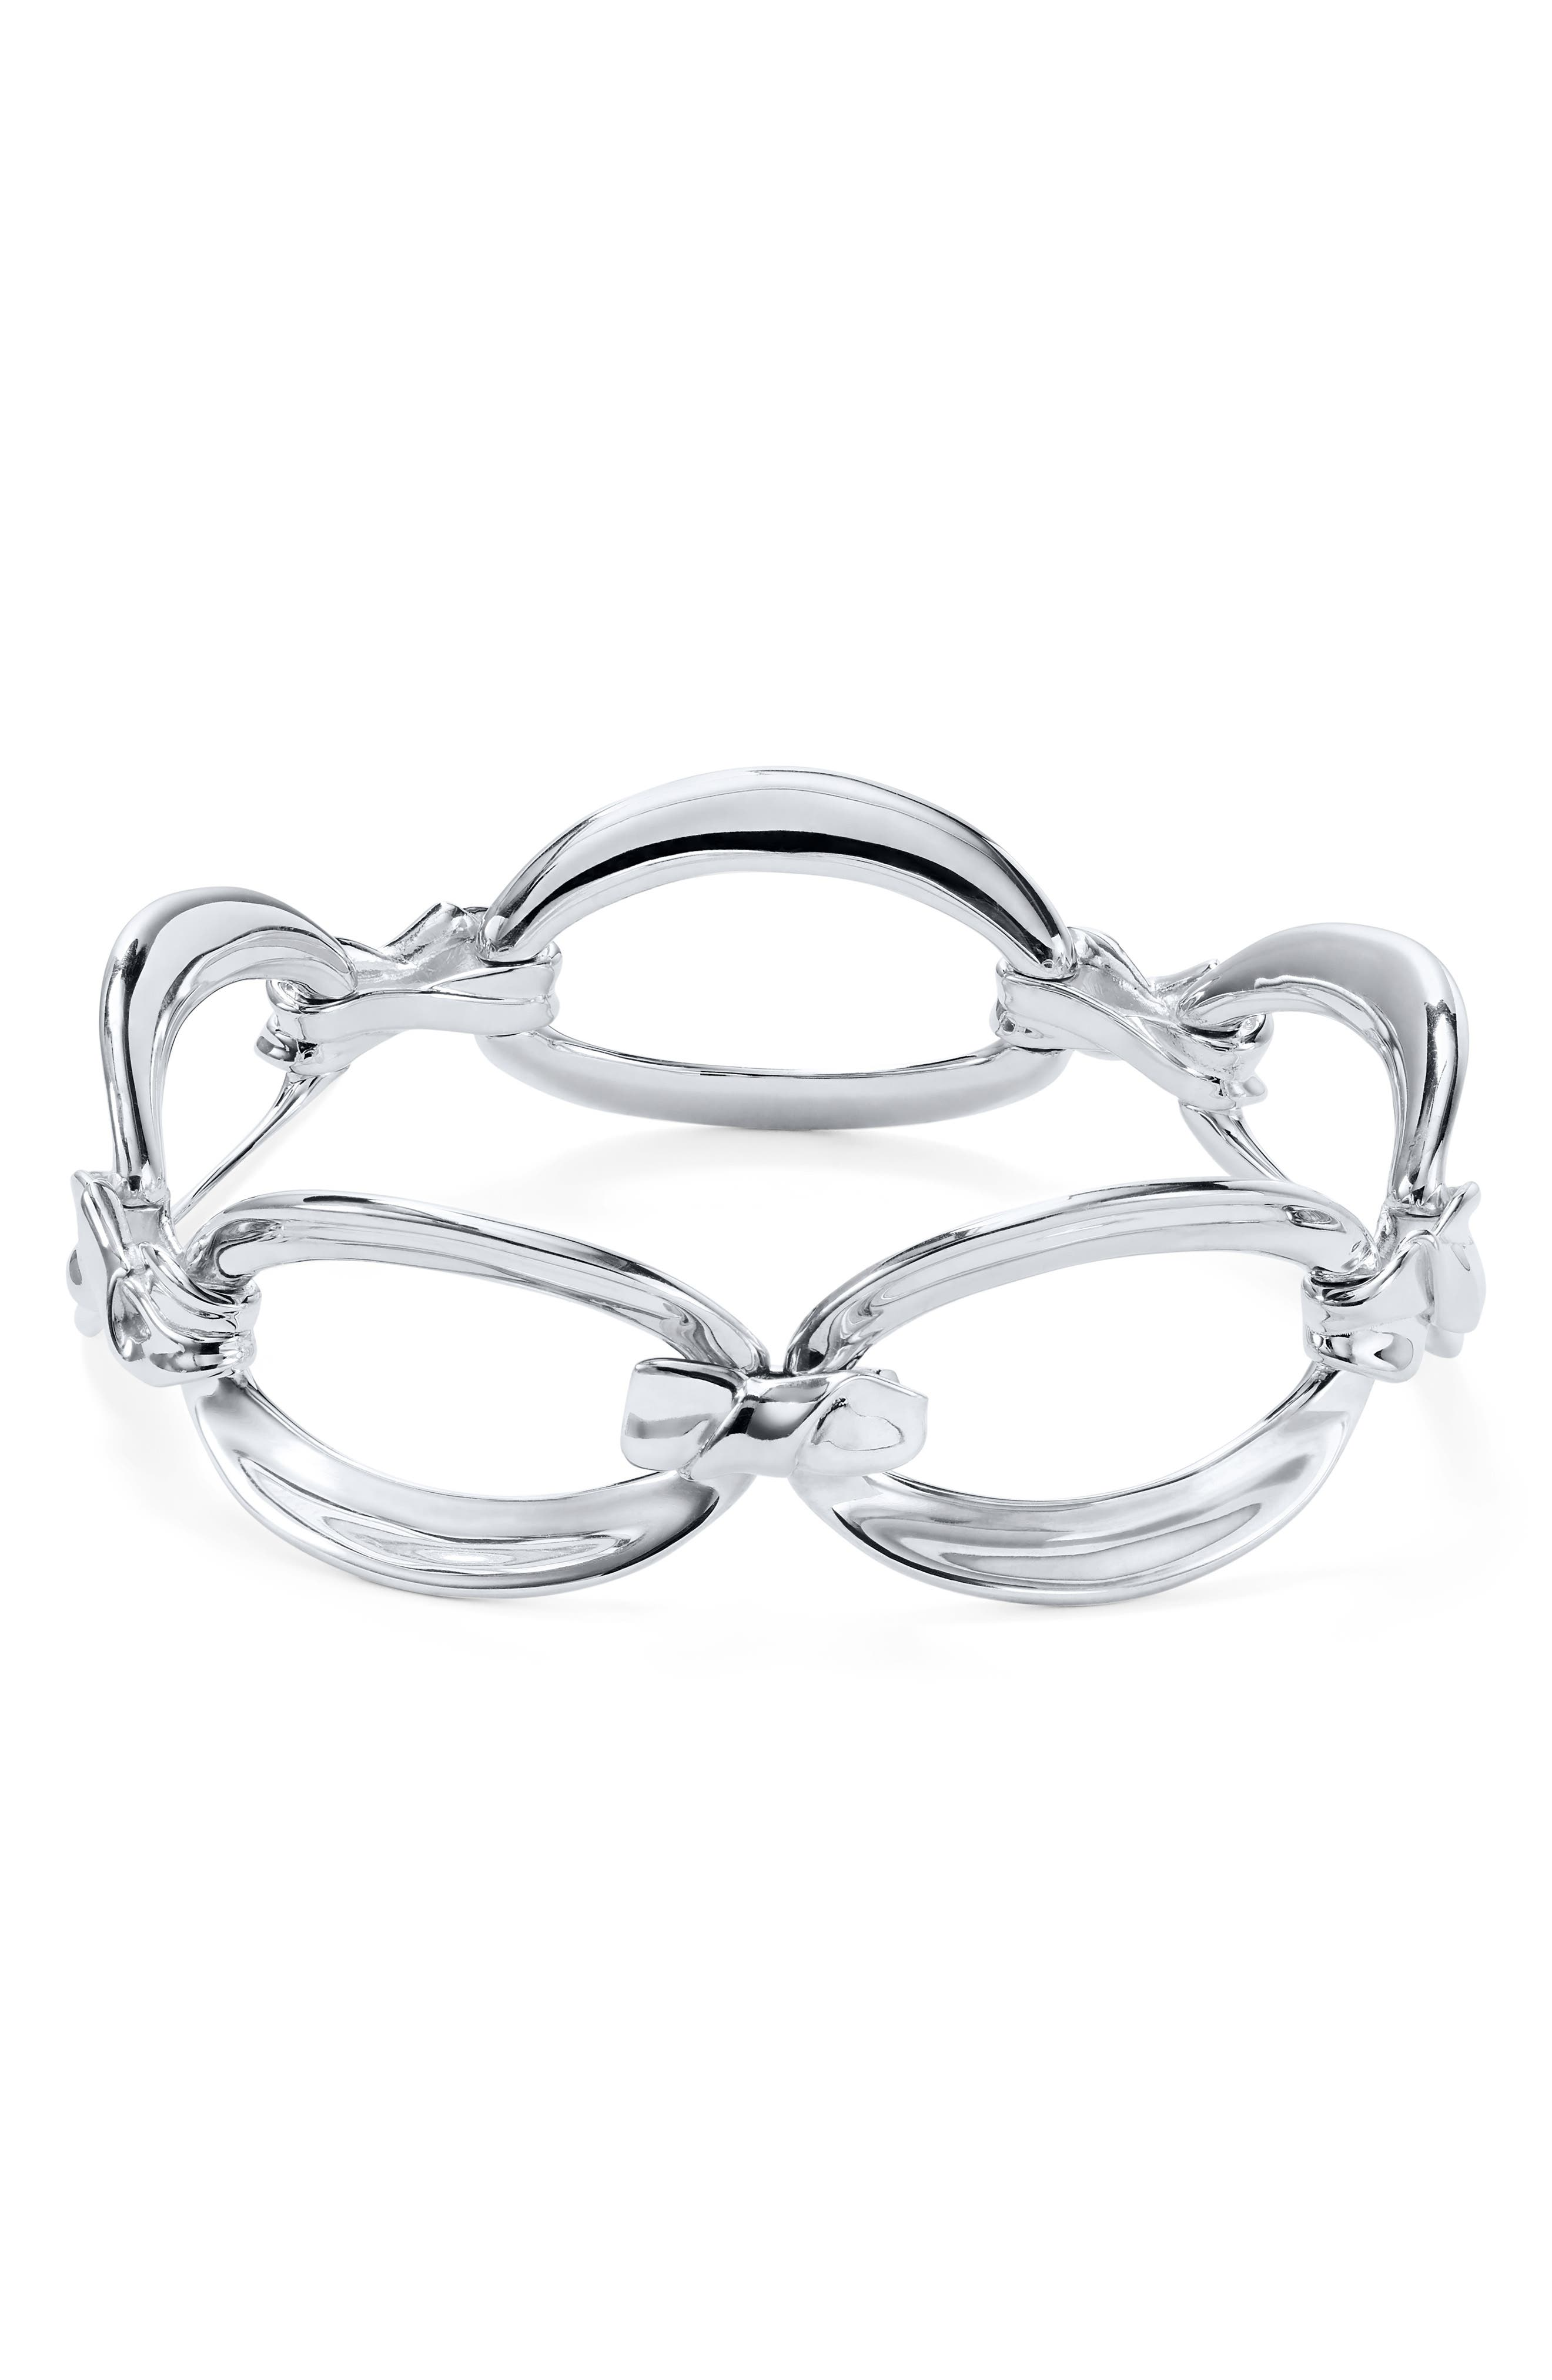 IPPOLITA Classico Sterling Silver Flexible Twisted Ribbon Bracelet